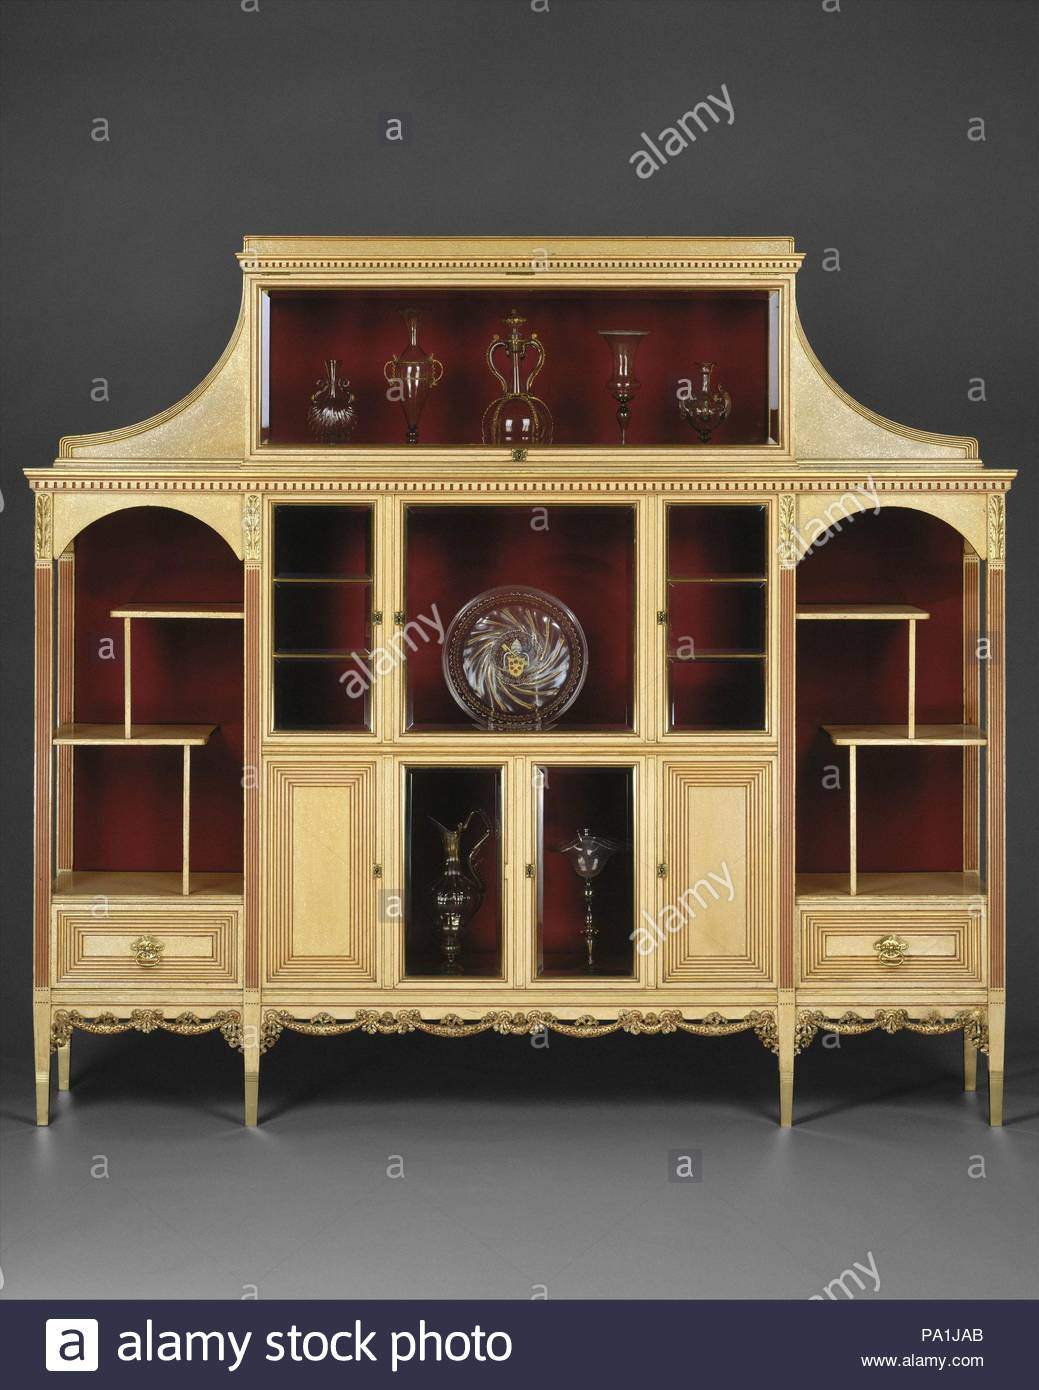 Cabinet, ca. 1883, Made in New York, New York, United States, American, Maple, with painted and gilded surface, bevelled glass, silk velvet, brass, 64 1/2 x 71 x 14 1/2 in. (163.8 x 180.3 x 36.8 cm), Furniture, Attributed to Herter Brothers (German, active New York, 1864–1906), This drawing-room cabinet exemplifies the ivory and gold palette Herter Brothers favored in drawing rooms designed for their wealthy clients, such as Oliver Ames, industrialist and governor of Massachusetts, for whom this piece was made. - Stock Image